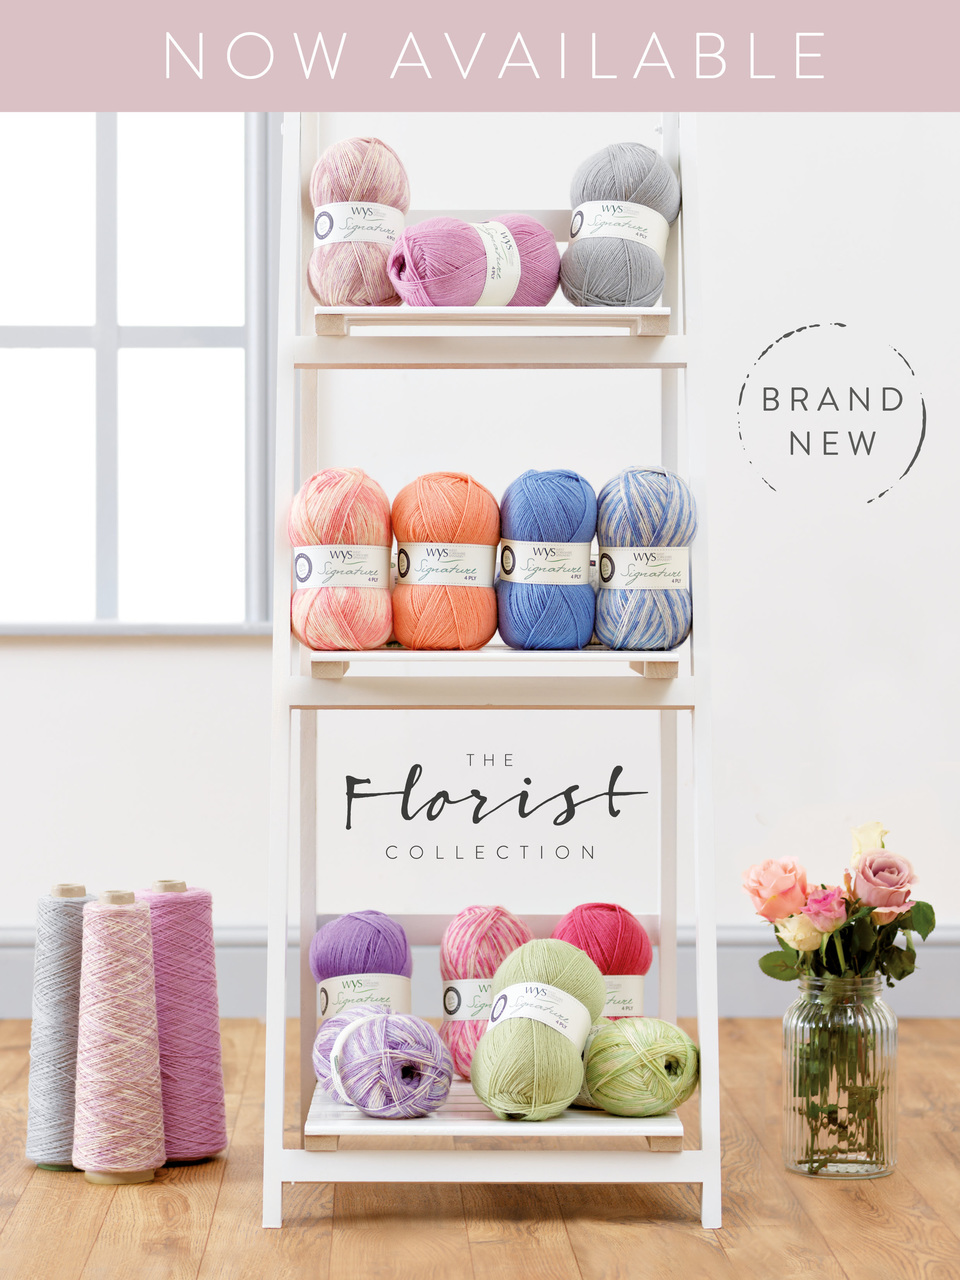 The Florist Collection Signature 4-ply  from West Yorkshire Spinners